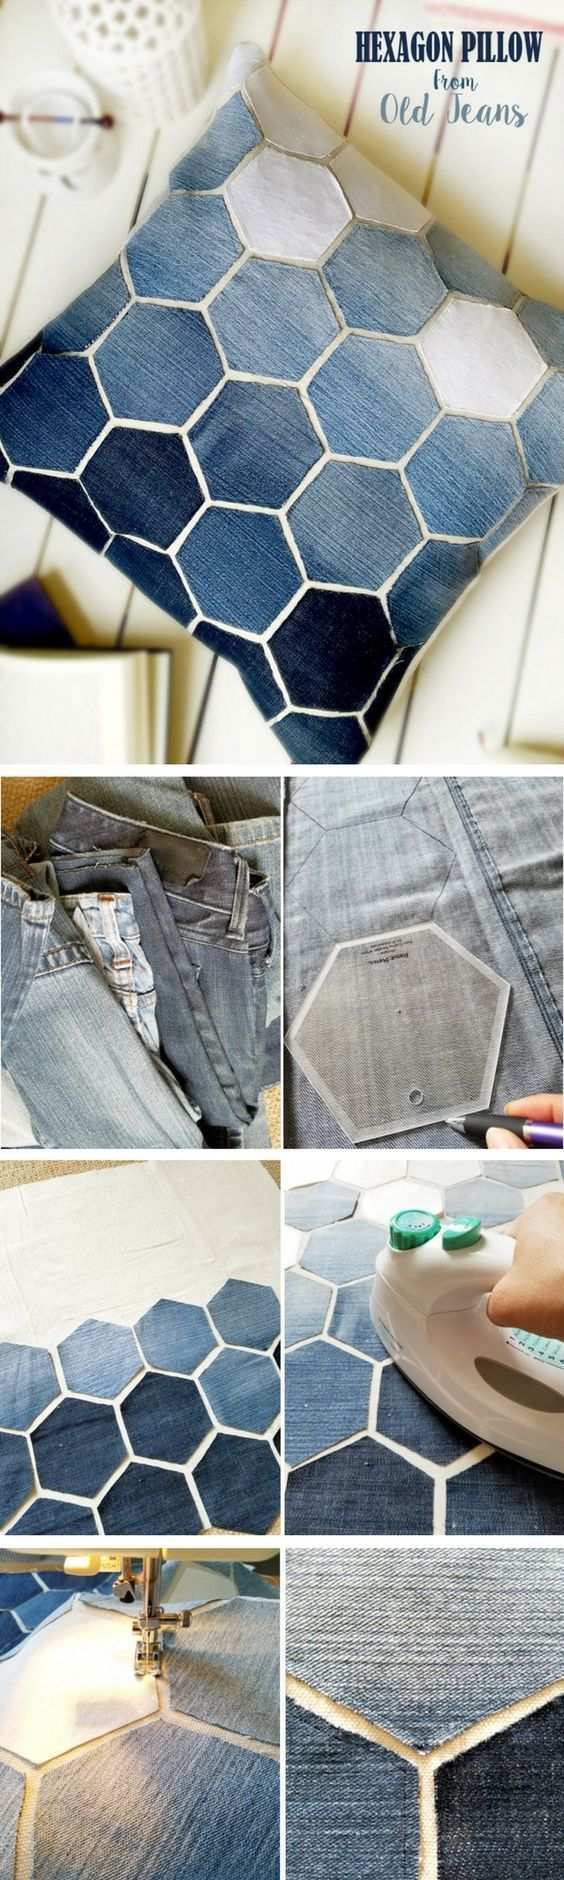 Look into your closet, chances are you'll find at least a couple of pairs of old jeans that you haven't put on for a while. Even if you don't, you can find cheap jeans in thrift stores. And did you know that you can use old denim for home decor? #diyjeansdecoration – Cach Oo